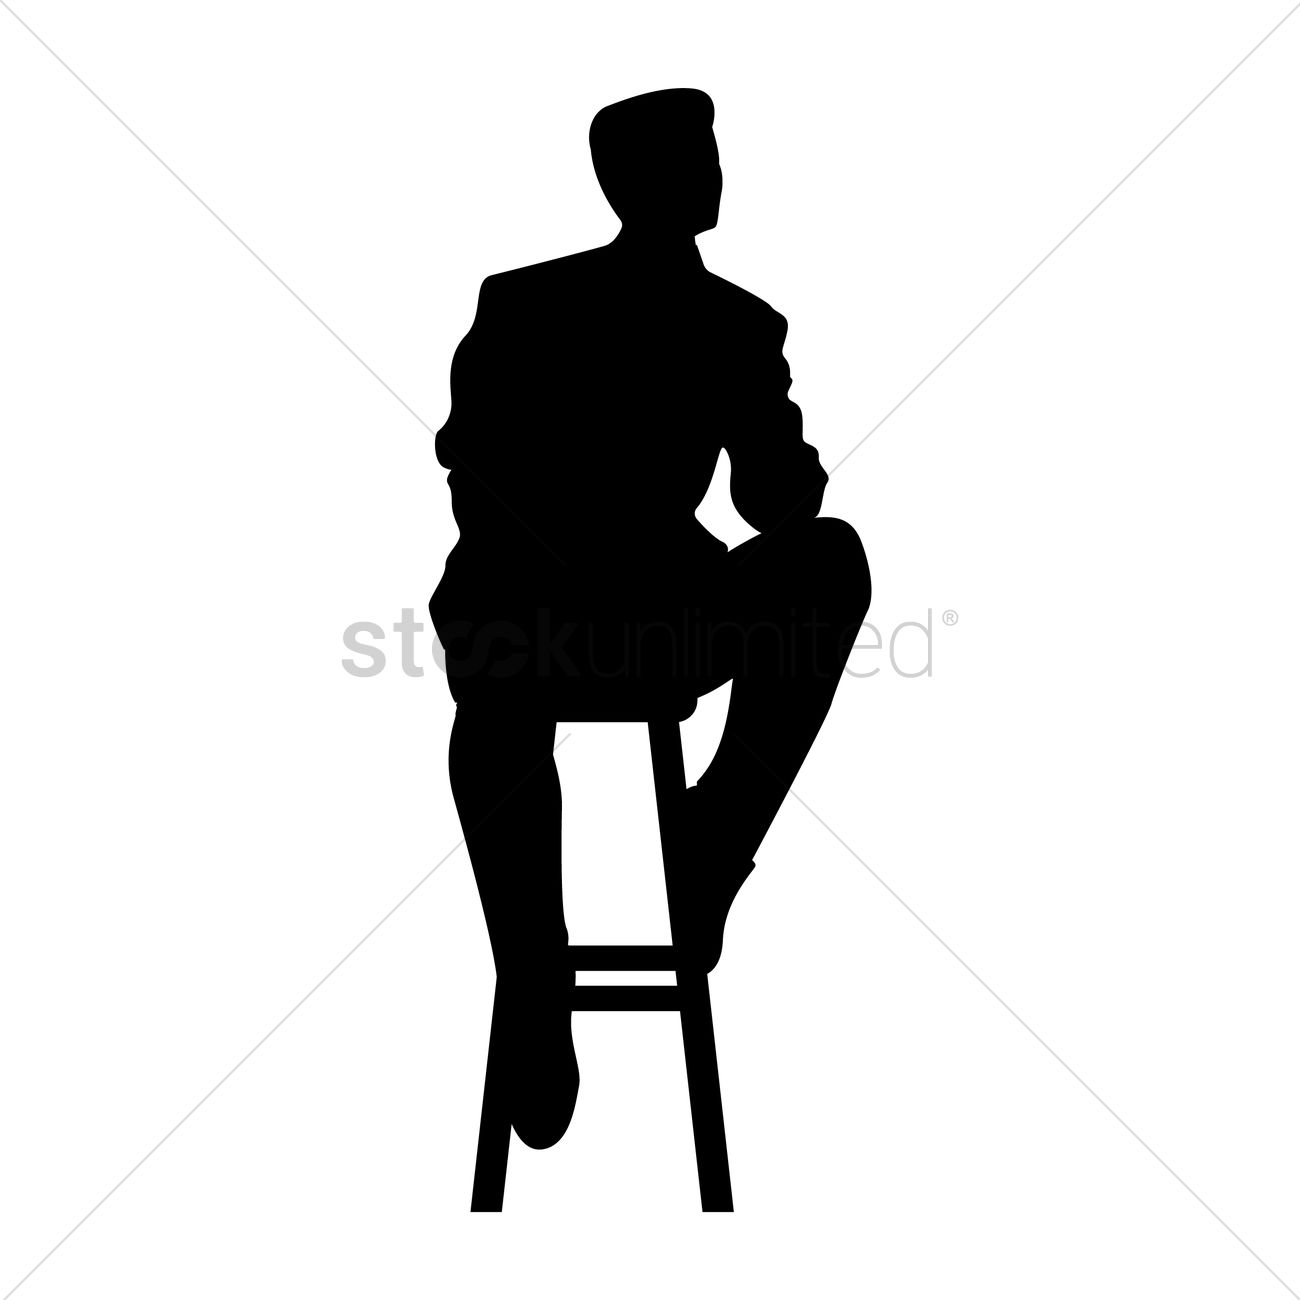 Silhouette Of Man Sitting On Stool Vector Image 1632976